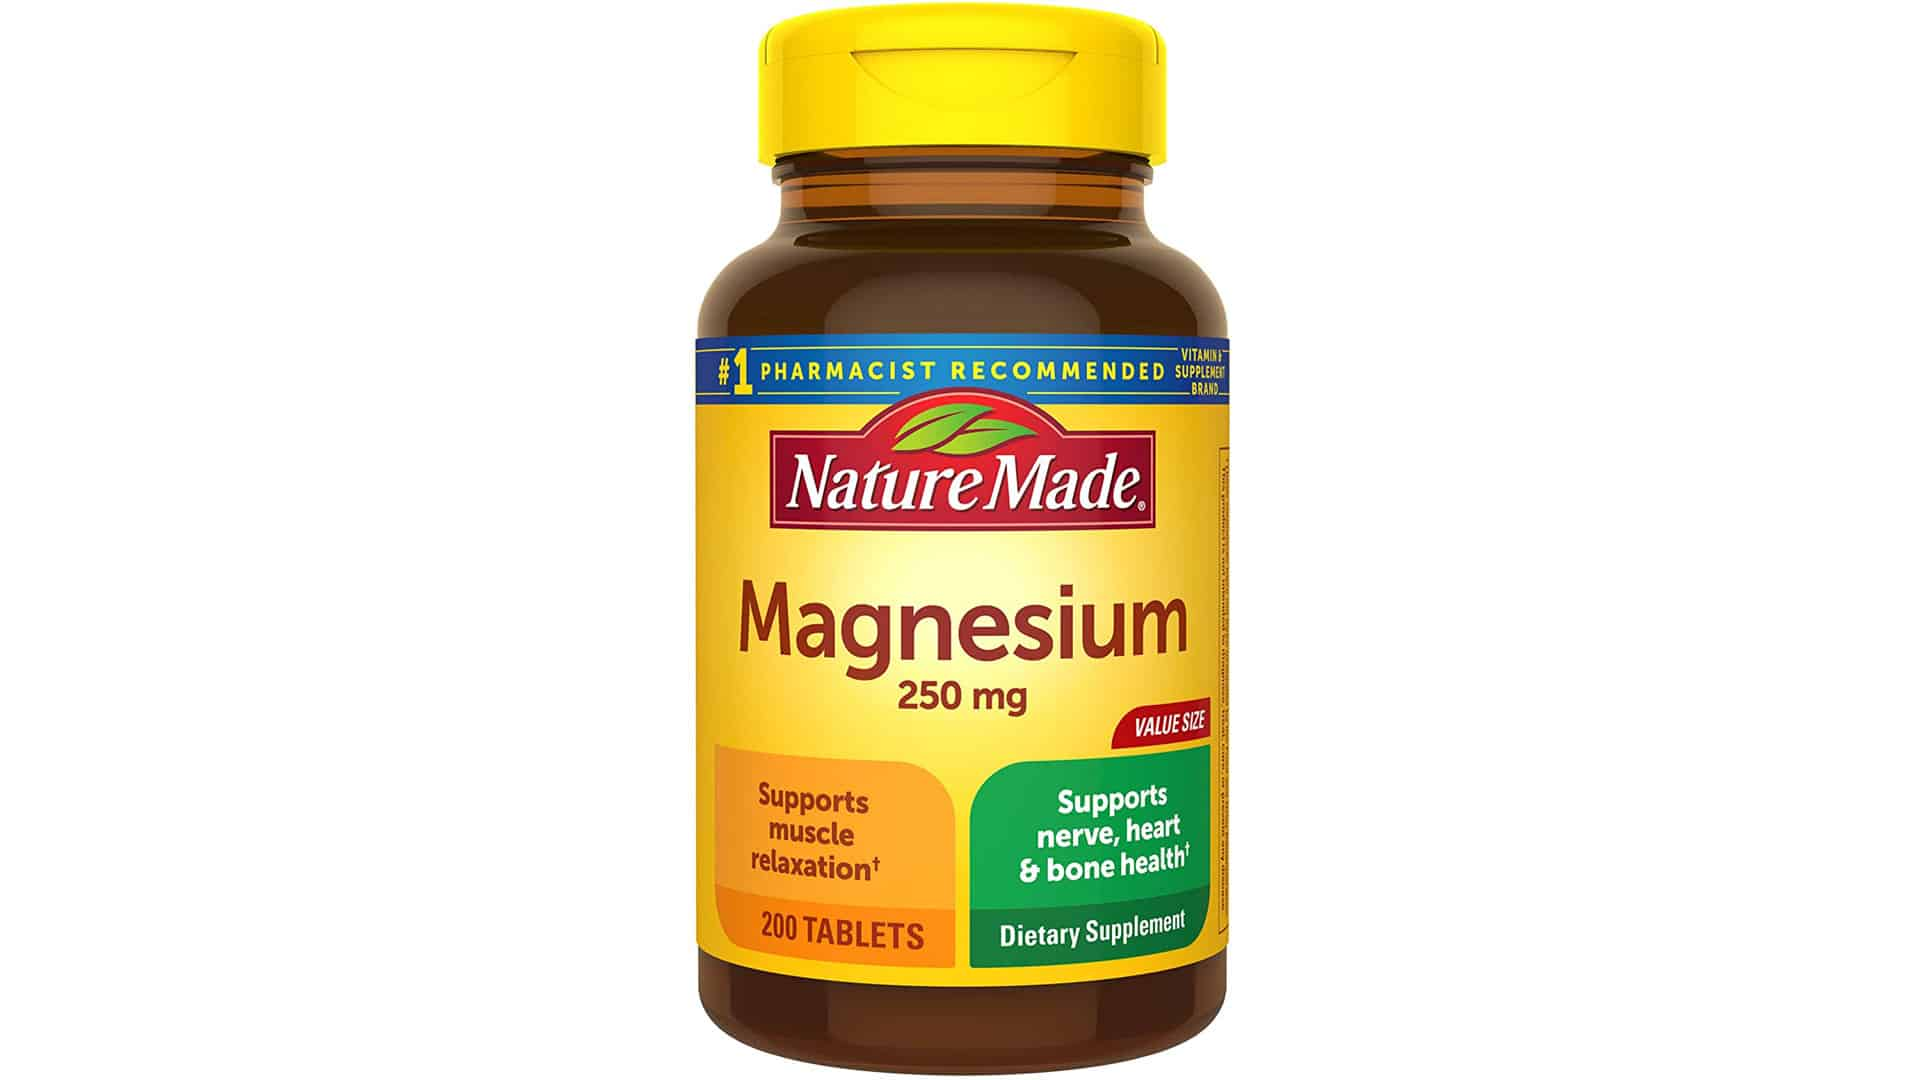 Nature Made Magnesium Tablet